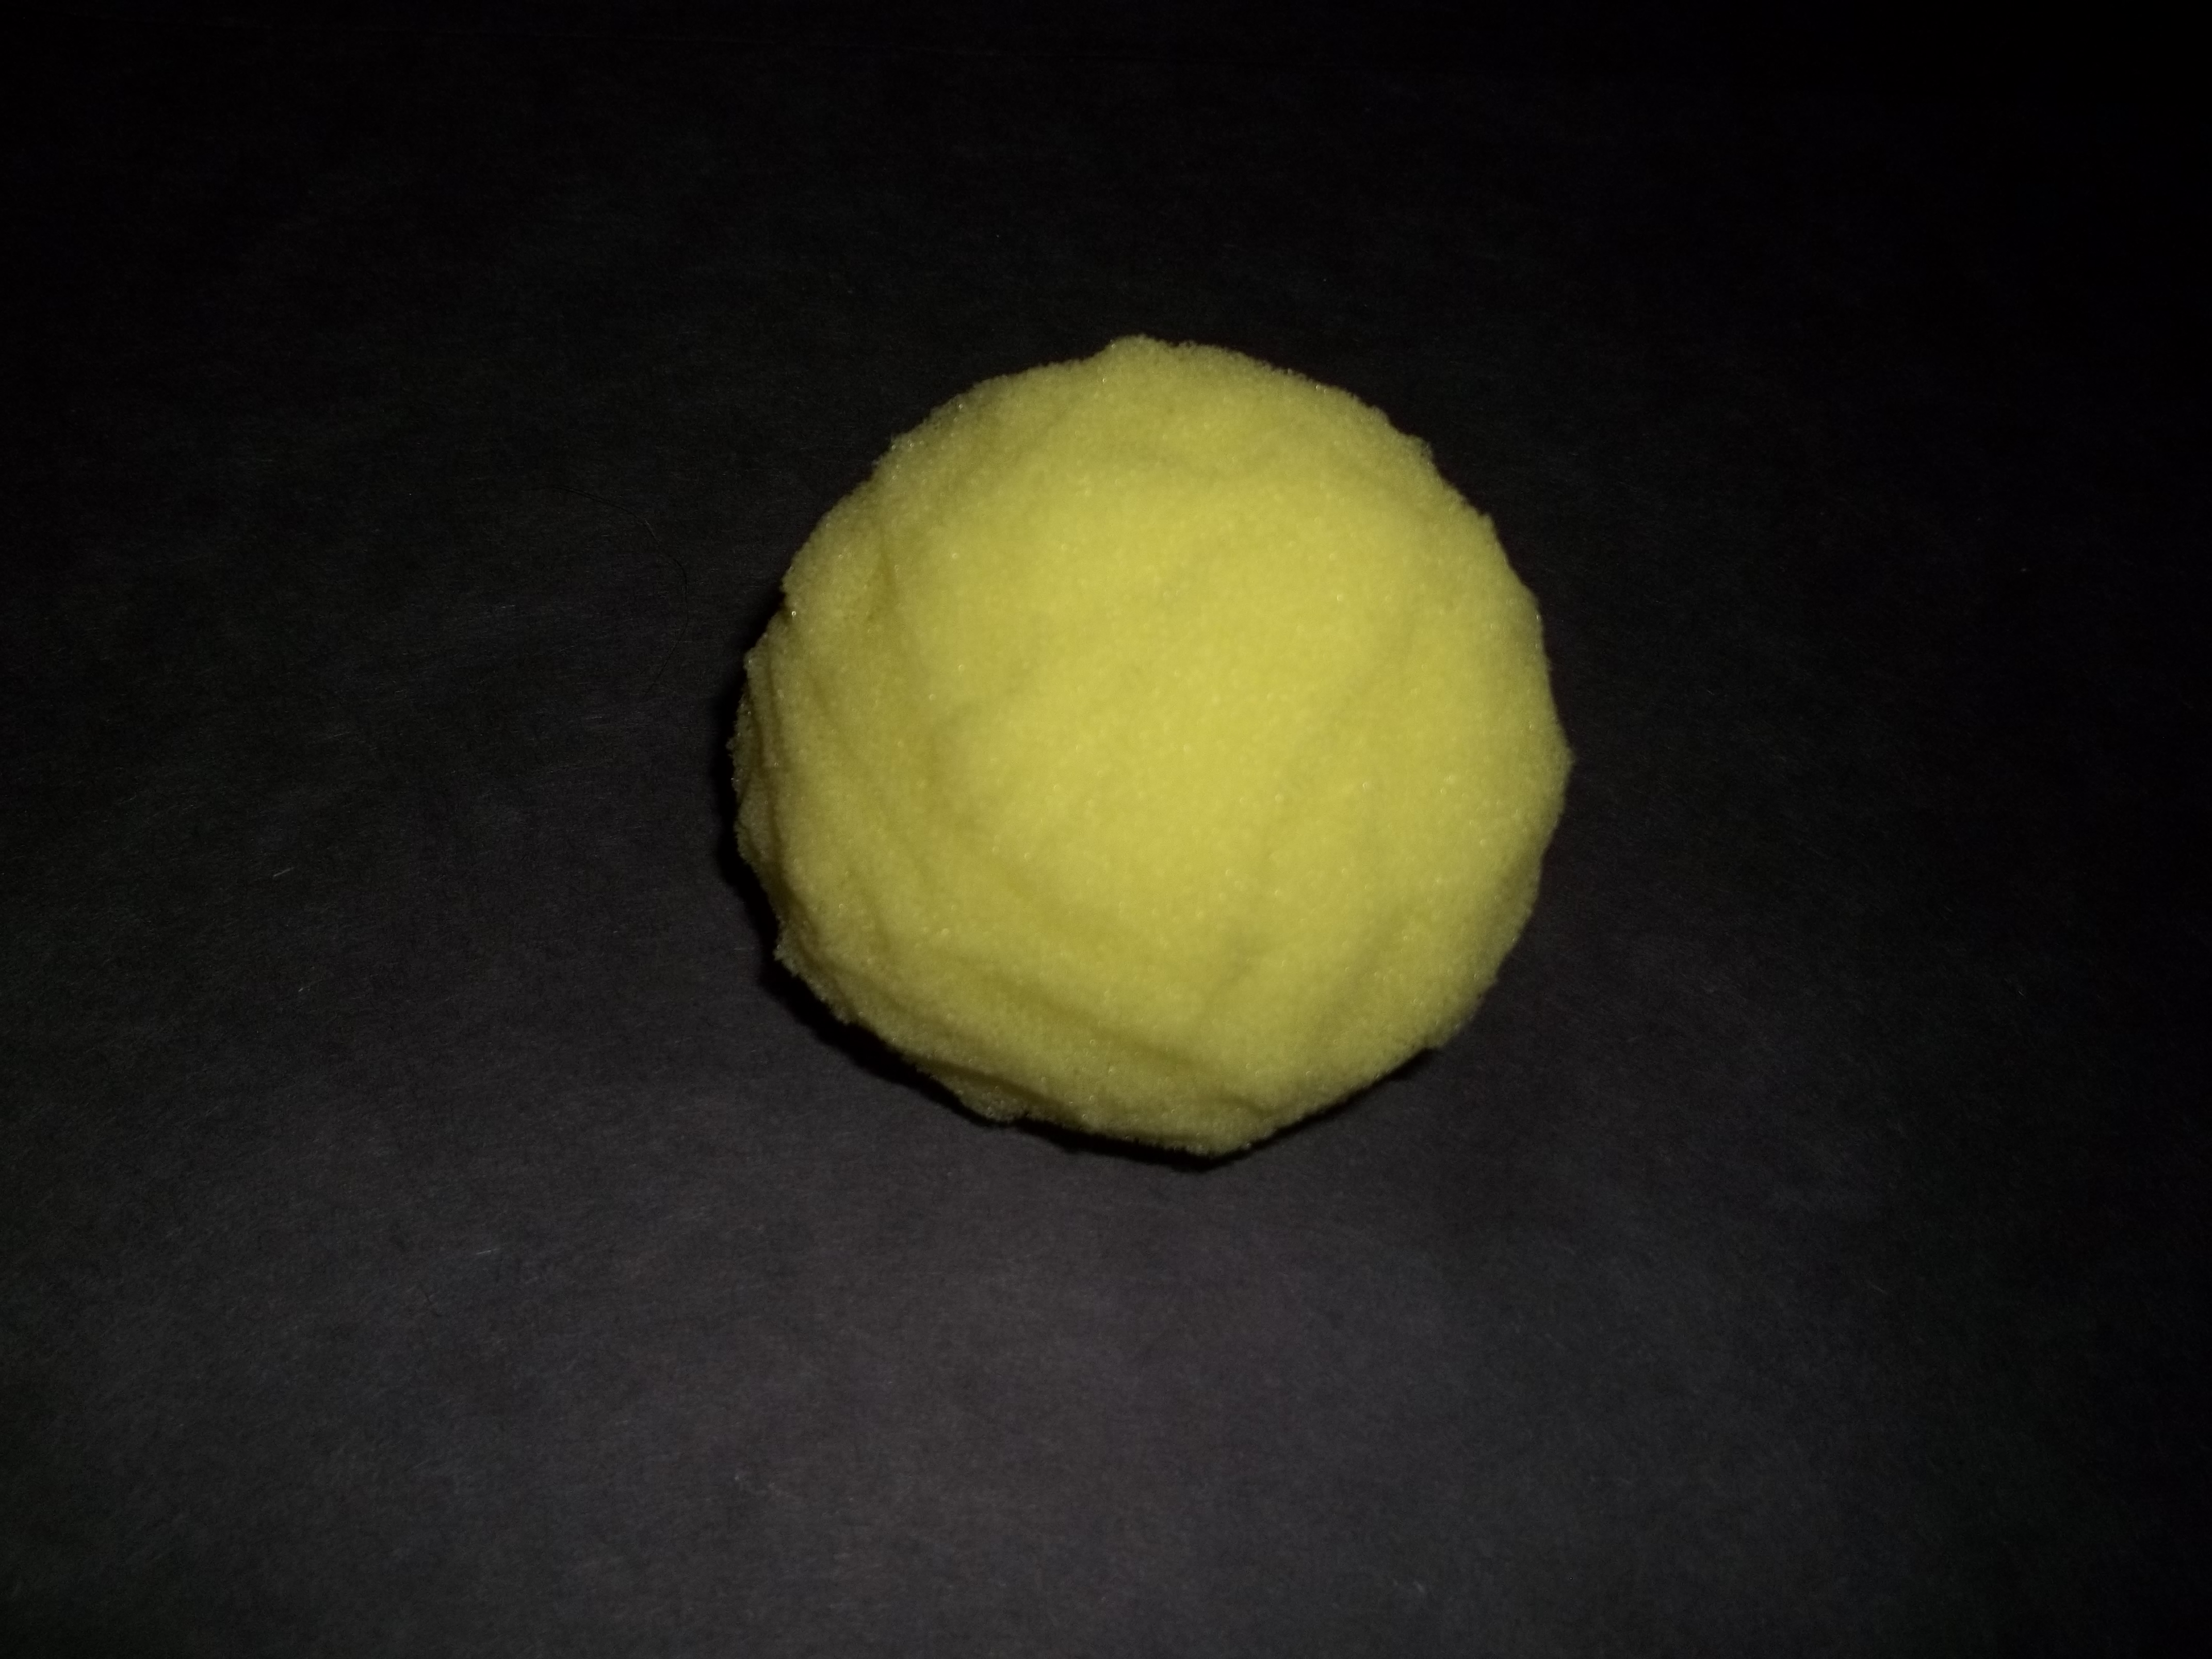 Picture of Cut the Sponge